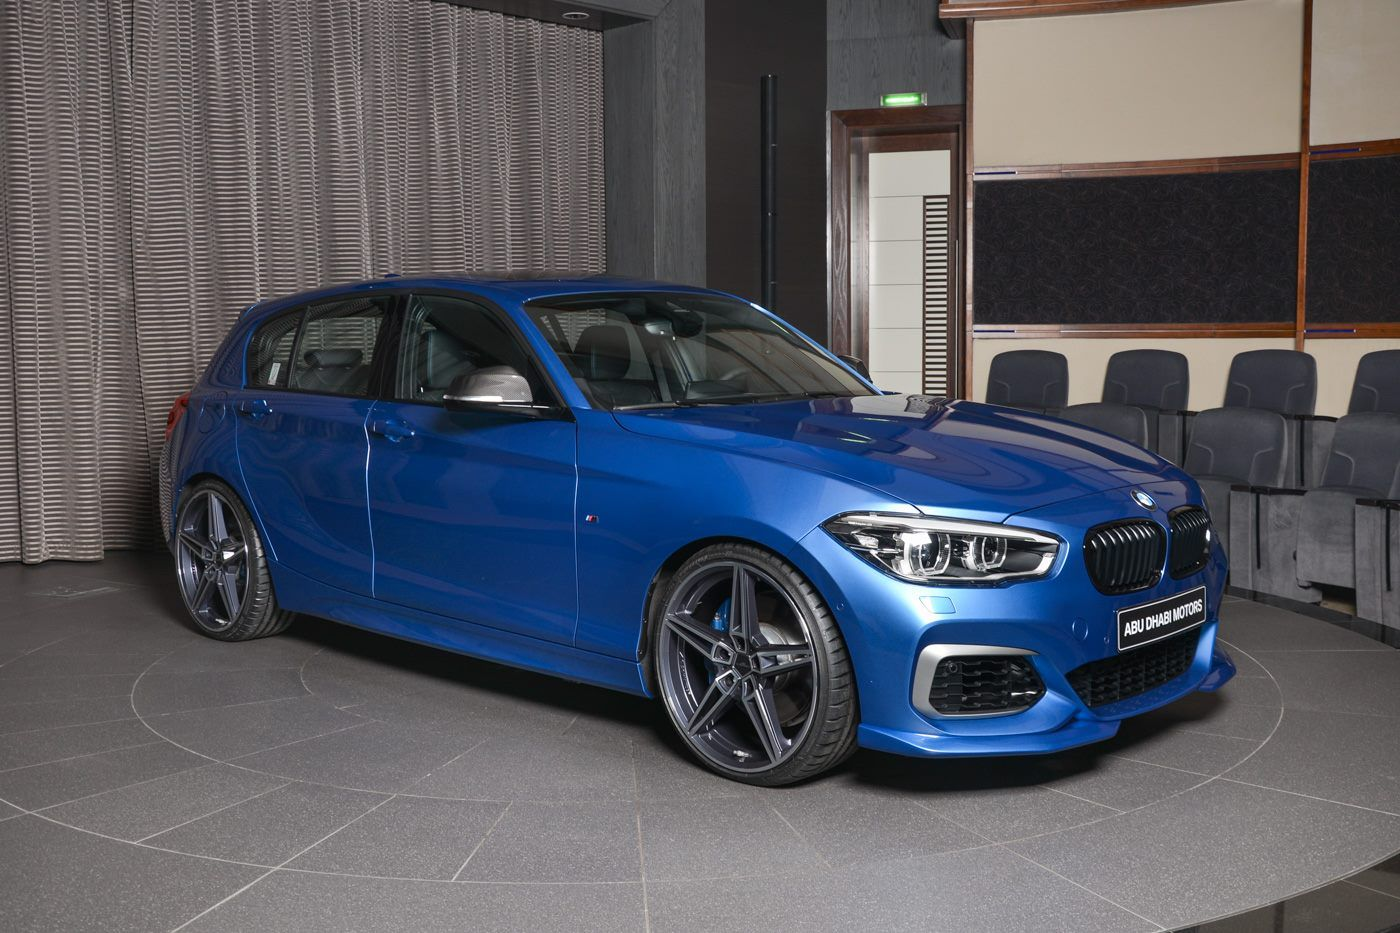 Bmw M140i Gets Serious Upgrades Before Delivery In Abu Dhabi Bmw Bmw Cars Bmw Series